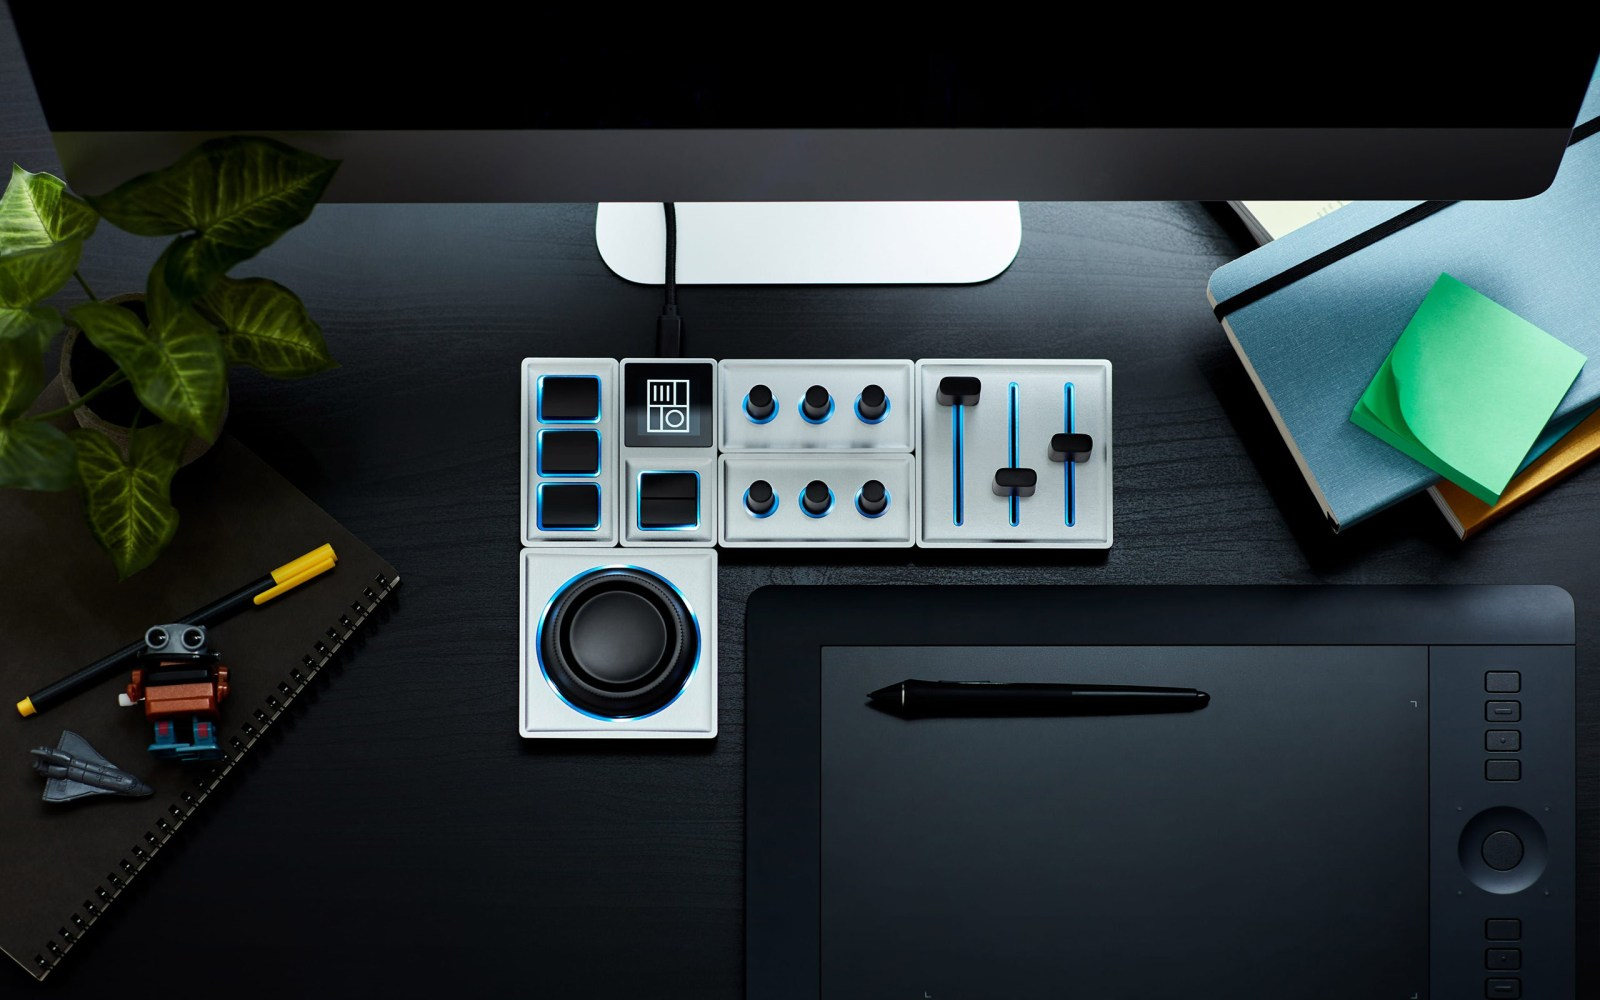 Monogram Creative Console turns your PC into an editing battlestation with levers and knobs